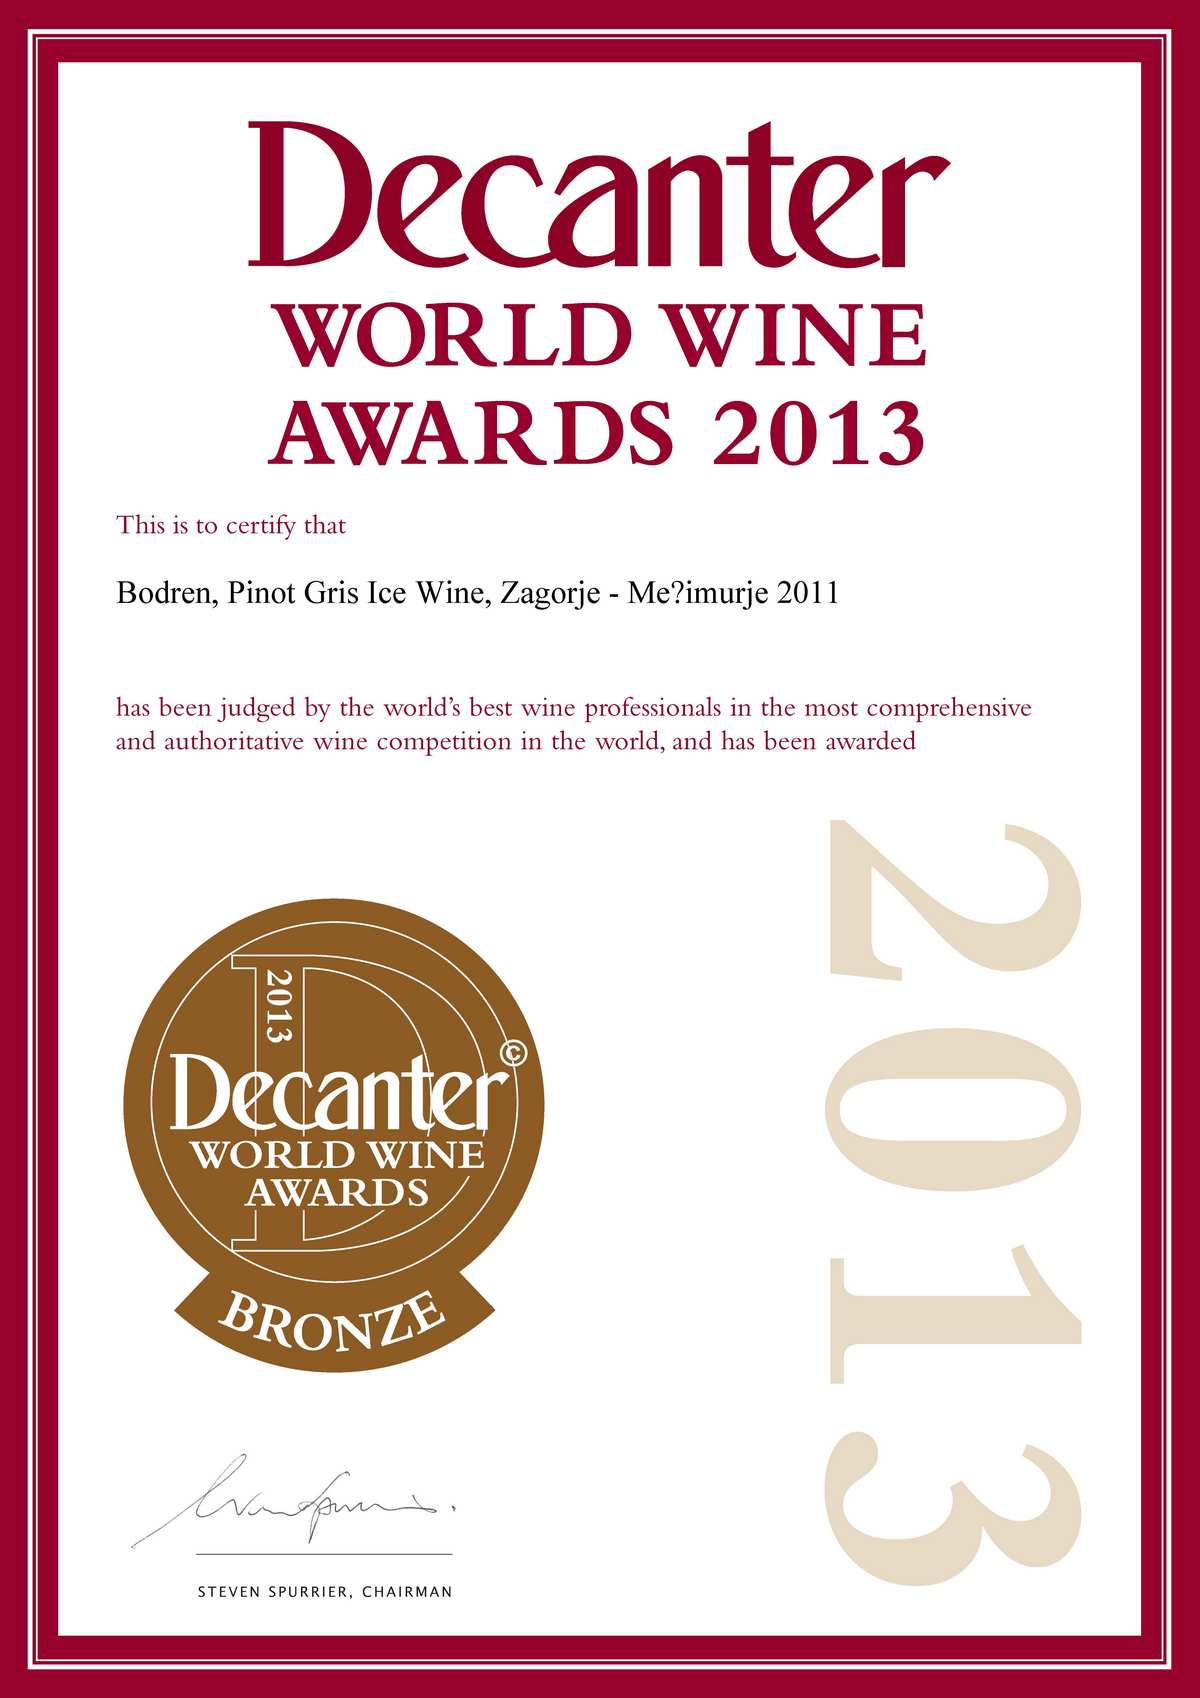 2013. Decanter World Wine Awards, London